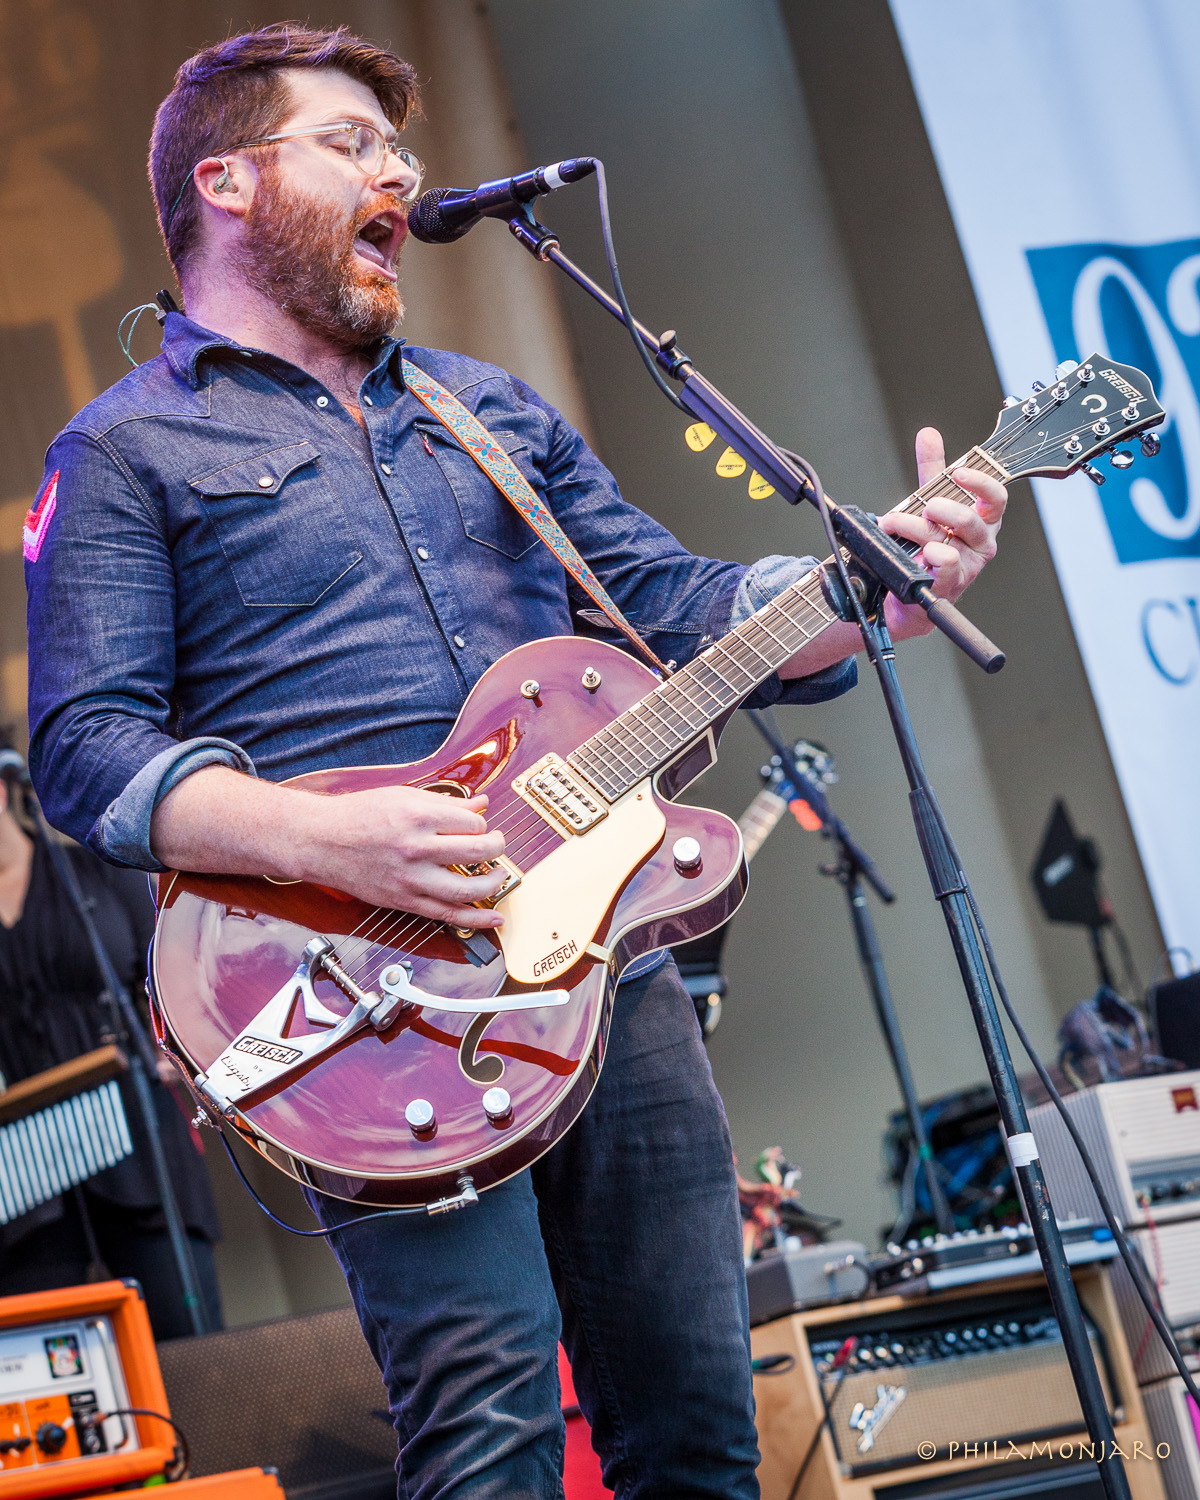 Setlist / Photos / Audio | The Decemberists & Shakey Graves @ Taste Of Chicago 7/8/16